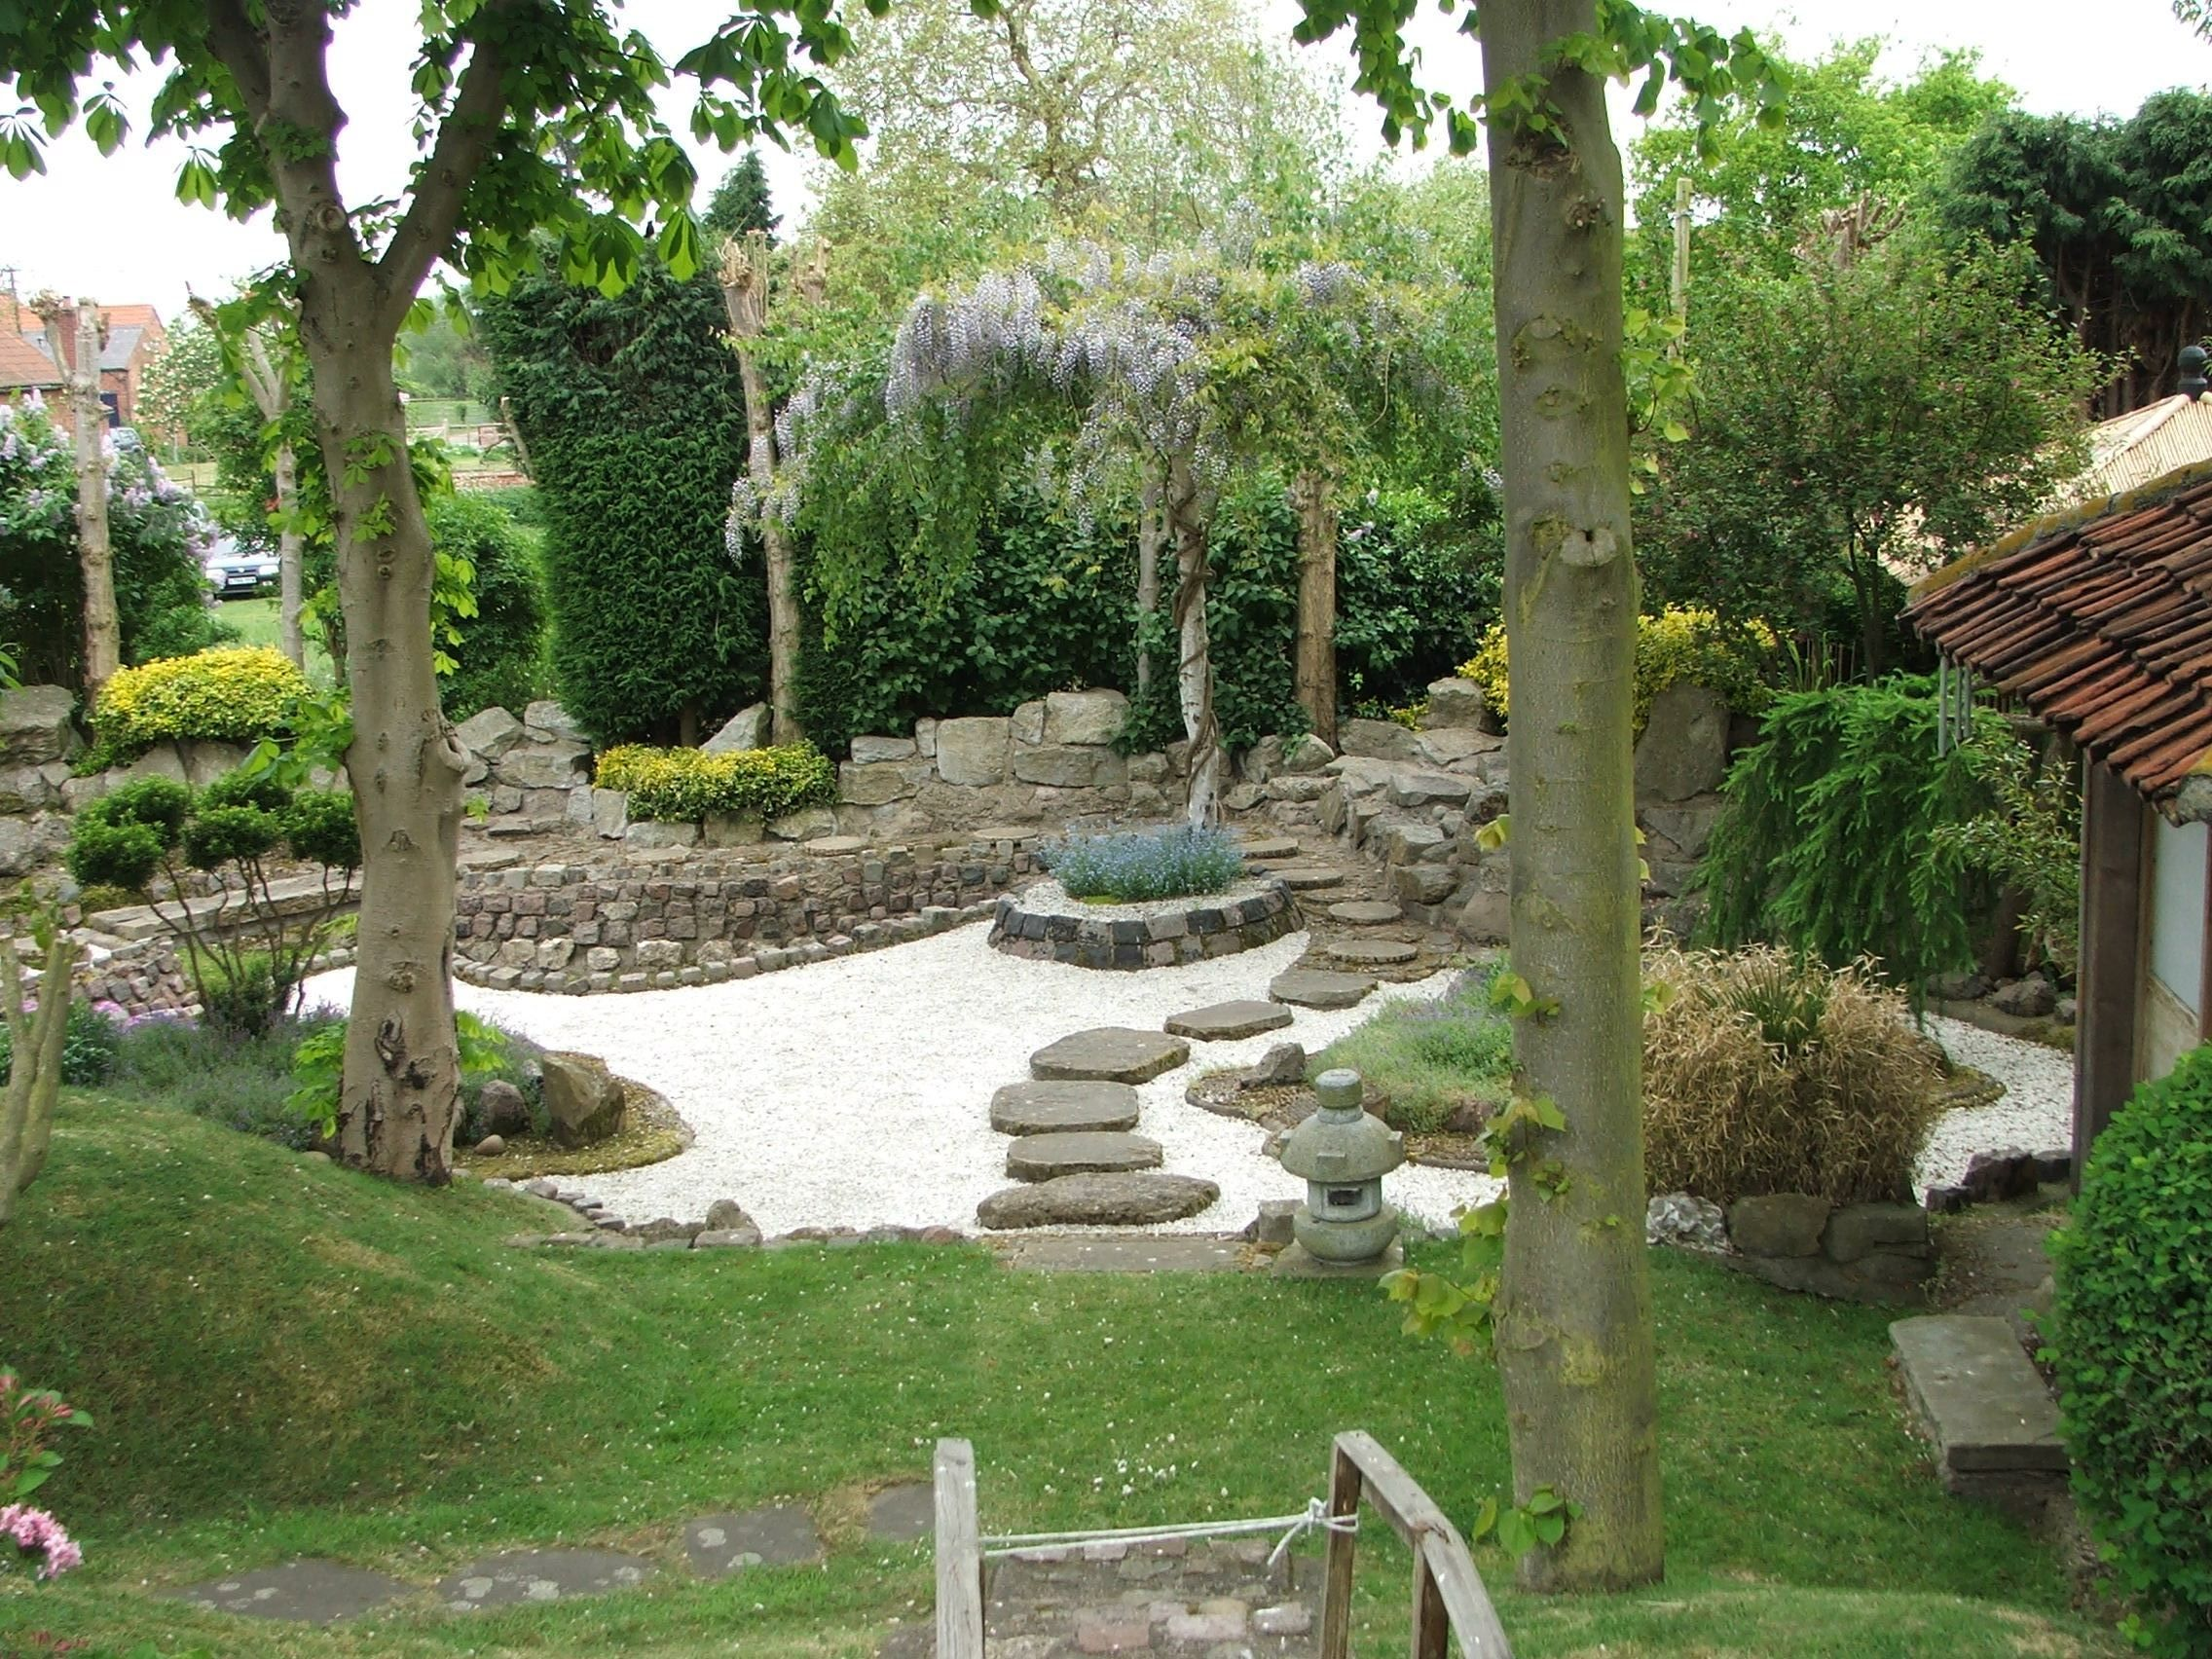 Welcome To My Japanese Gardens Blog We Have 2 FREE Videos For YOU!